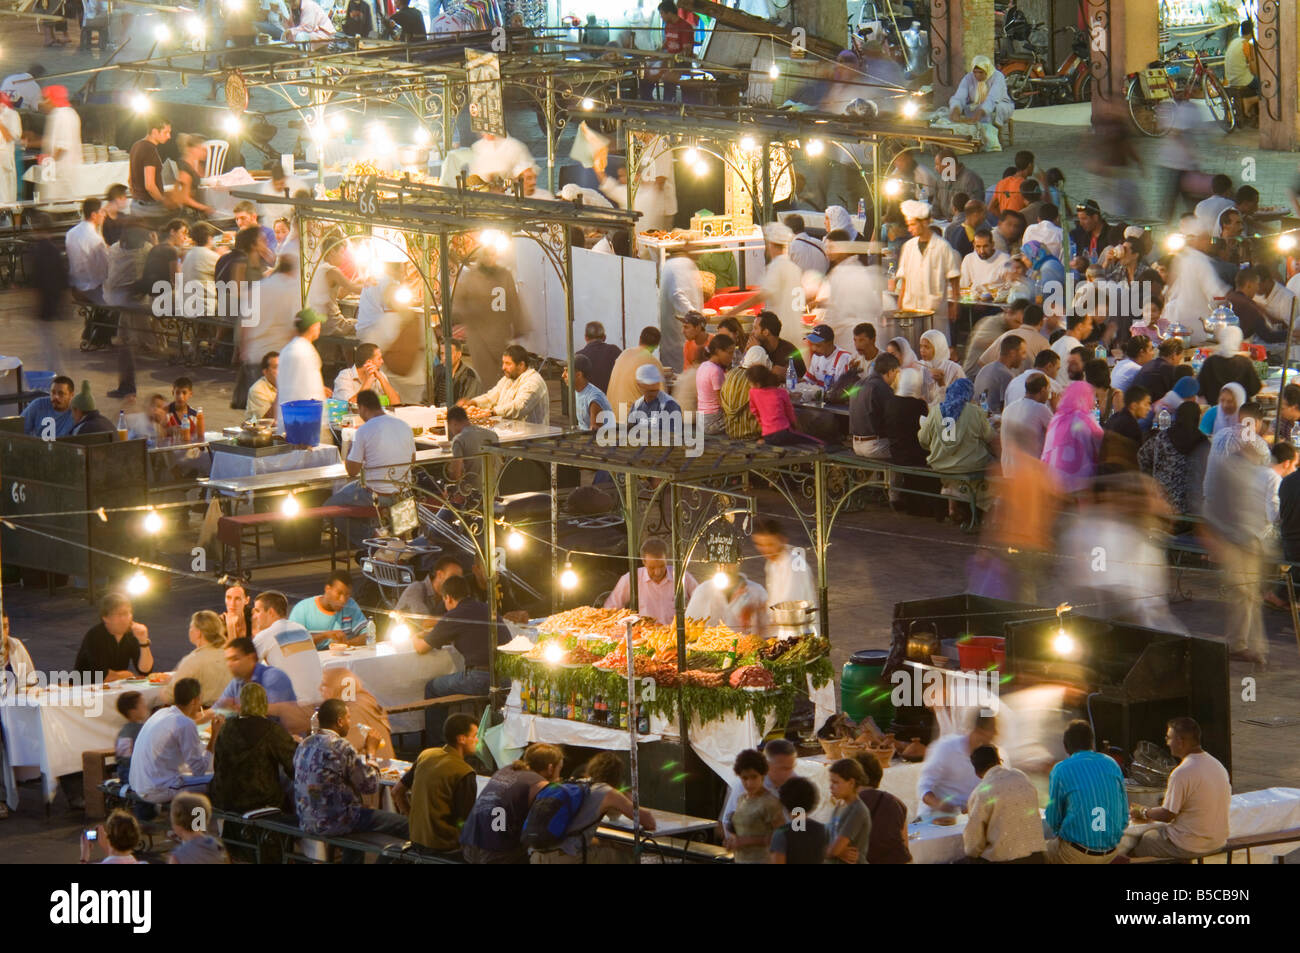 A compressed perspective aerial view of the open air 'restaurants' at the Djemaa El Fna with slow shutter - Stock Image